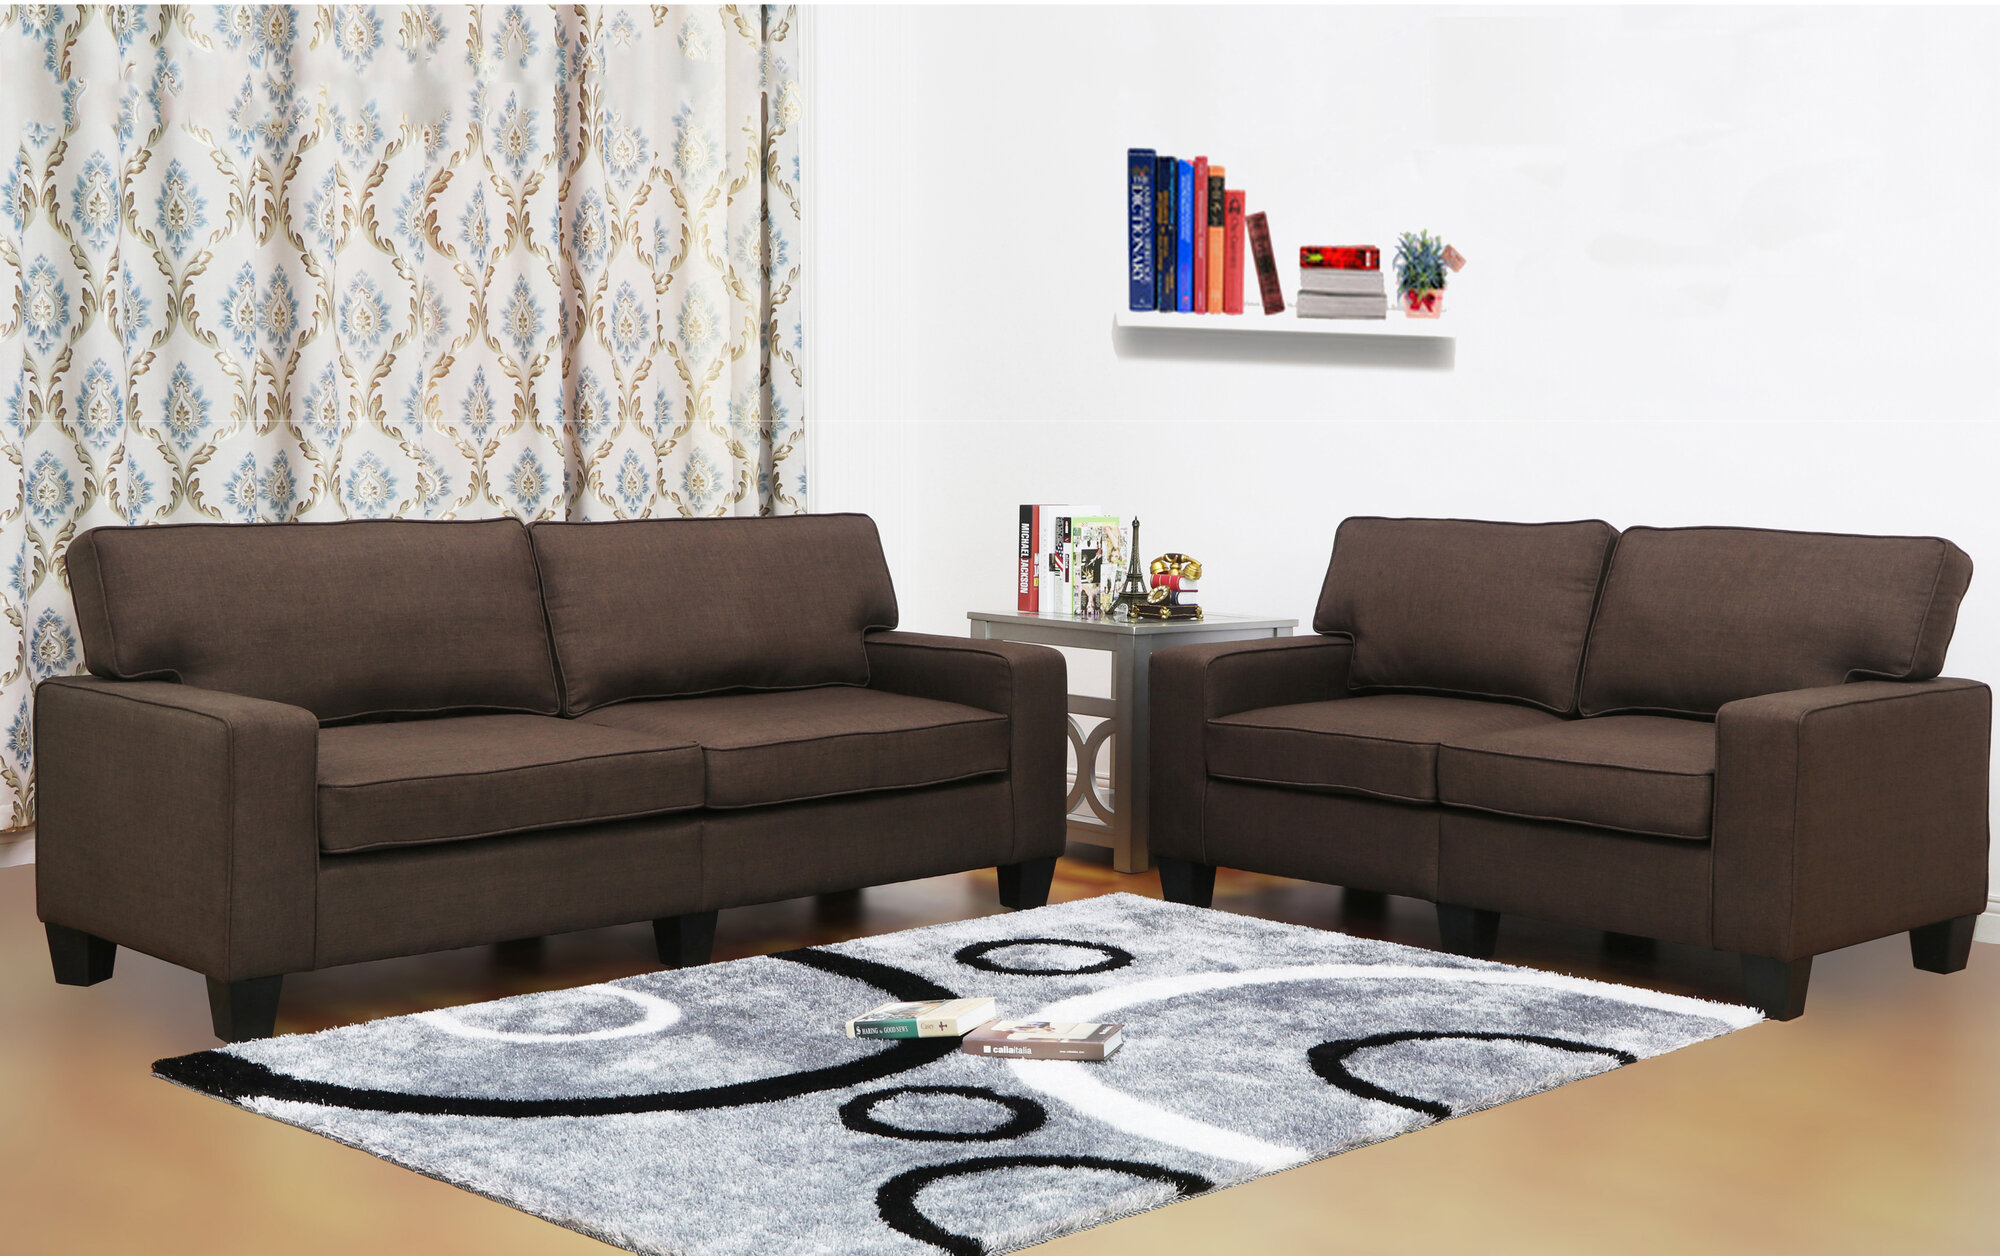 living in style jordan linen 2 piece modern living room sofa and loveseat set auctions buy and